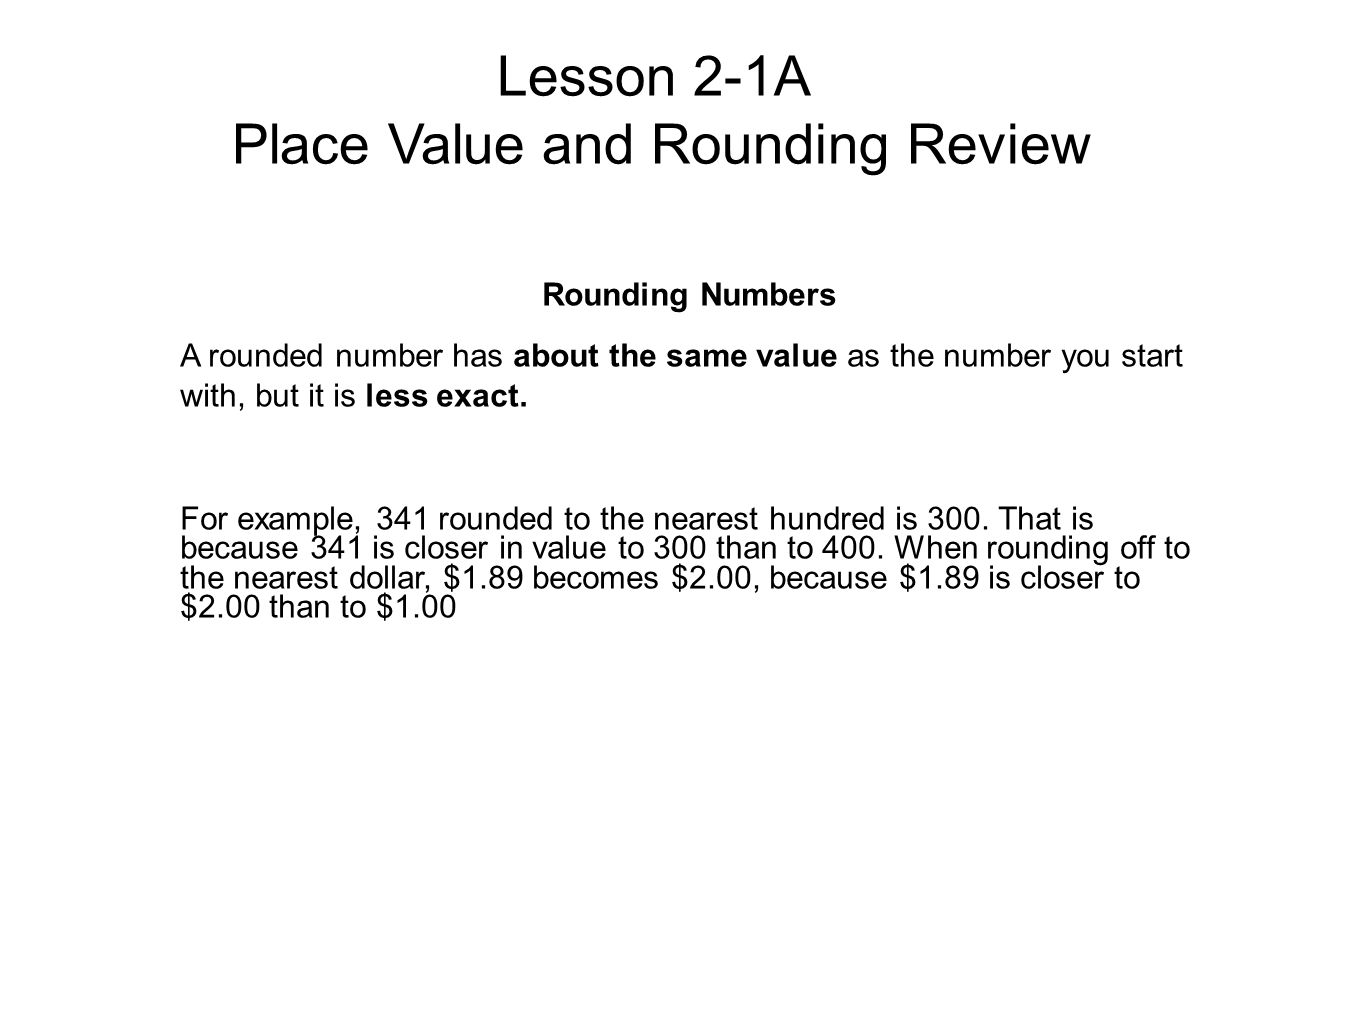 Lesson 2-1A Place Value and Rounding Review Rounding Numbers A rounded number has about the same value as the number you start with, but it is less exact.